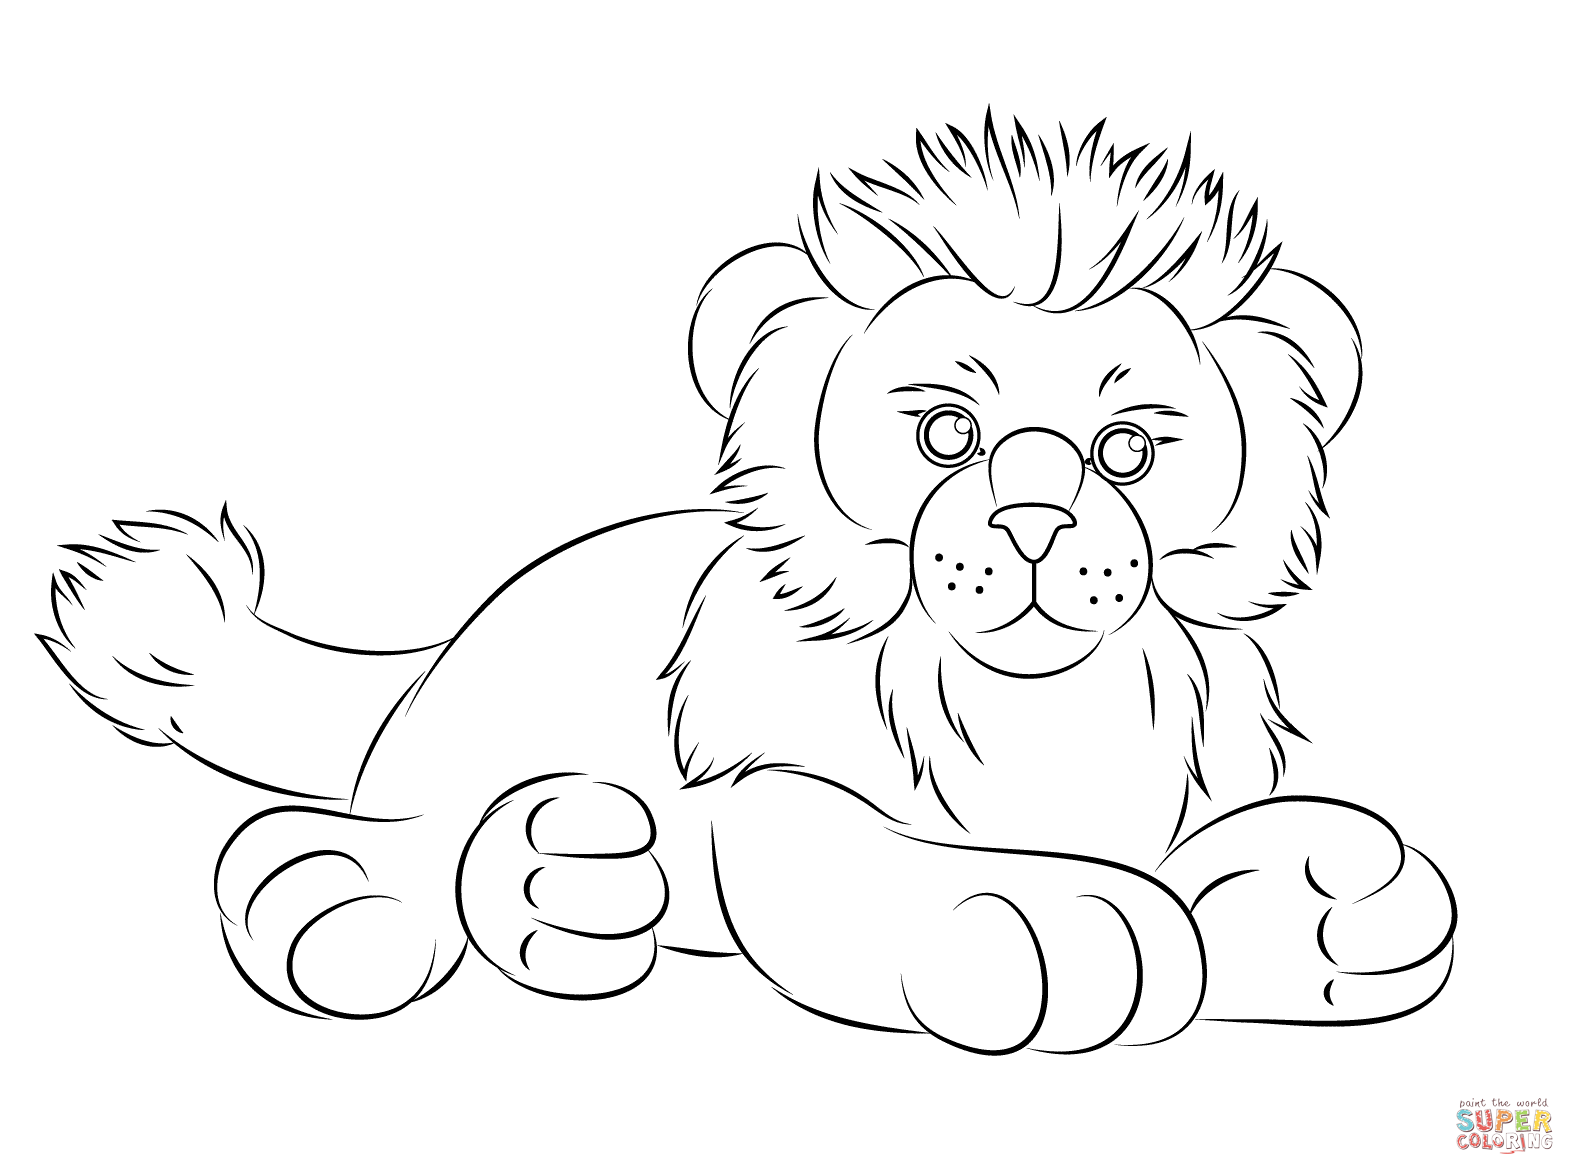 Webkinz Lion Coloring Page